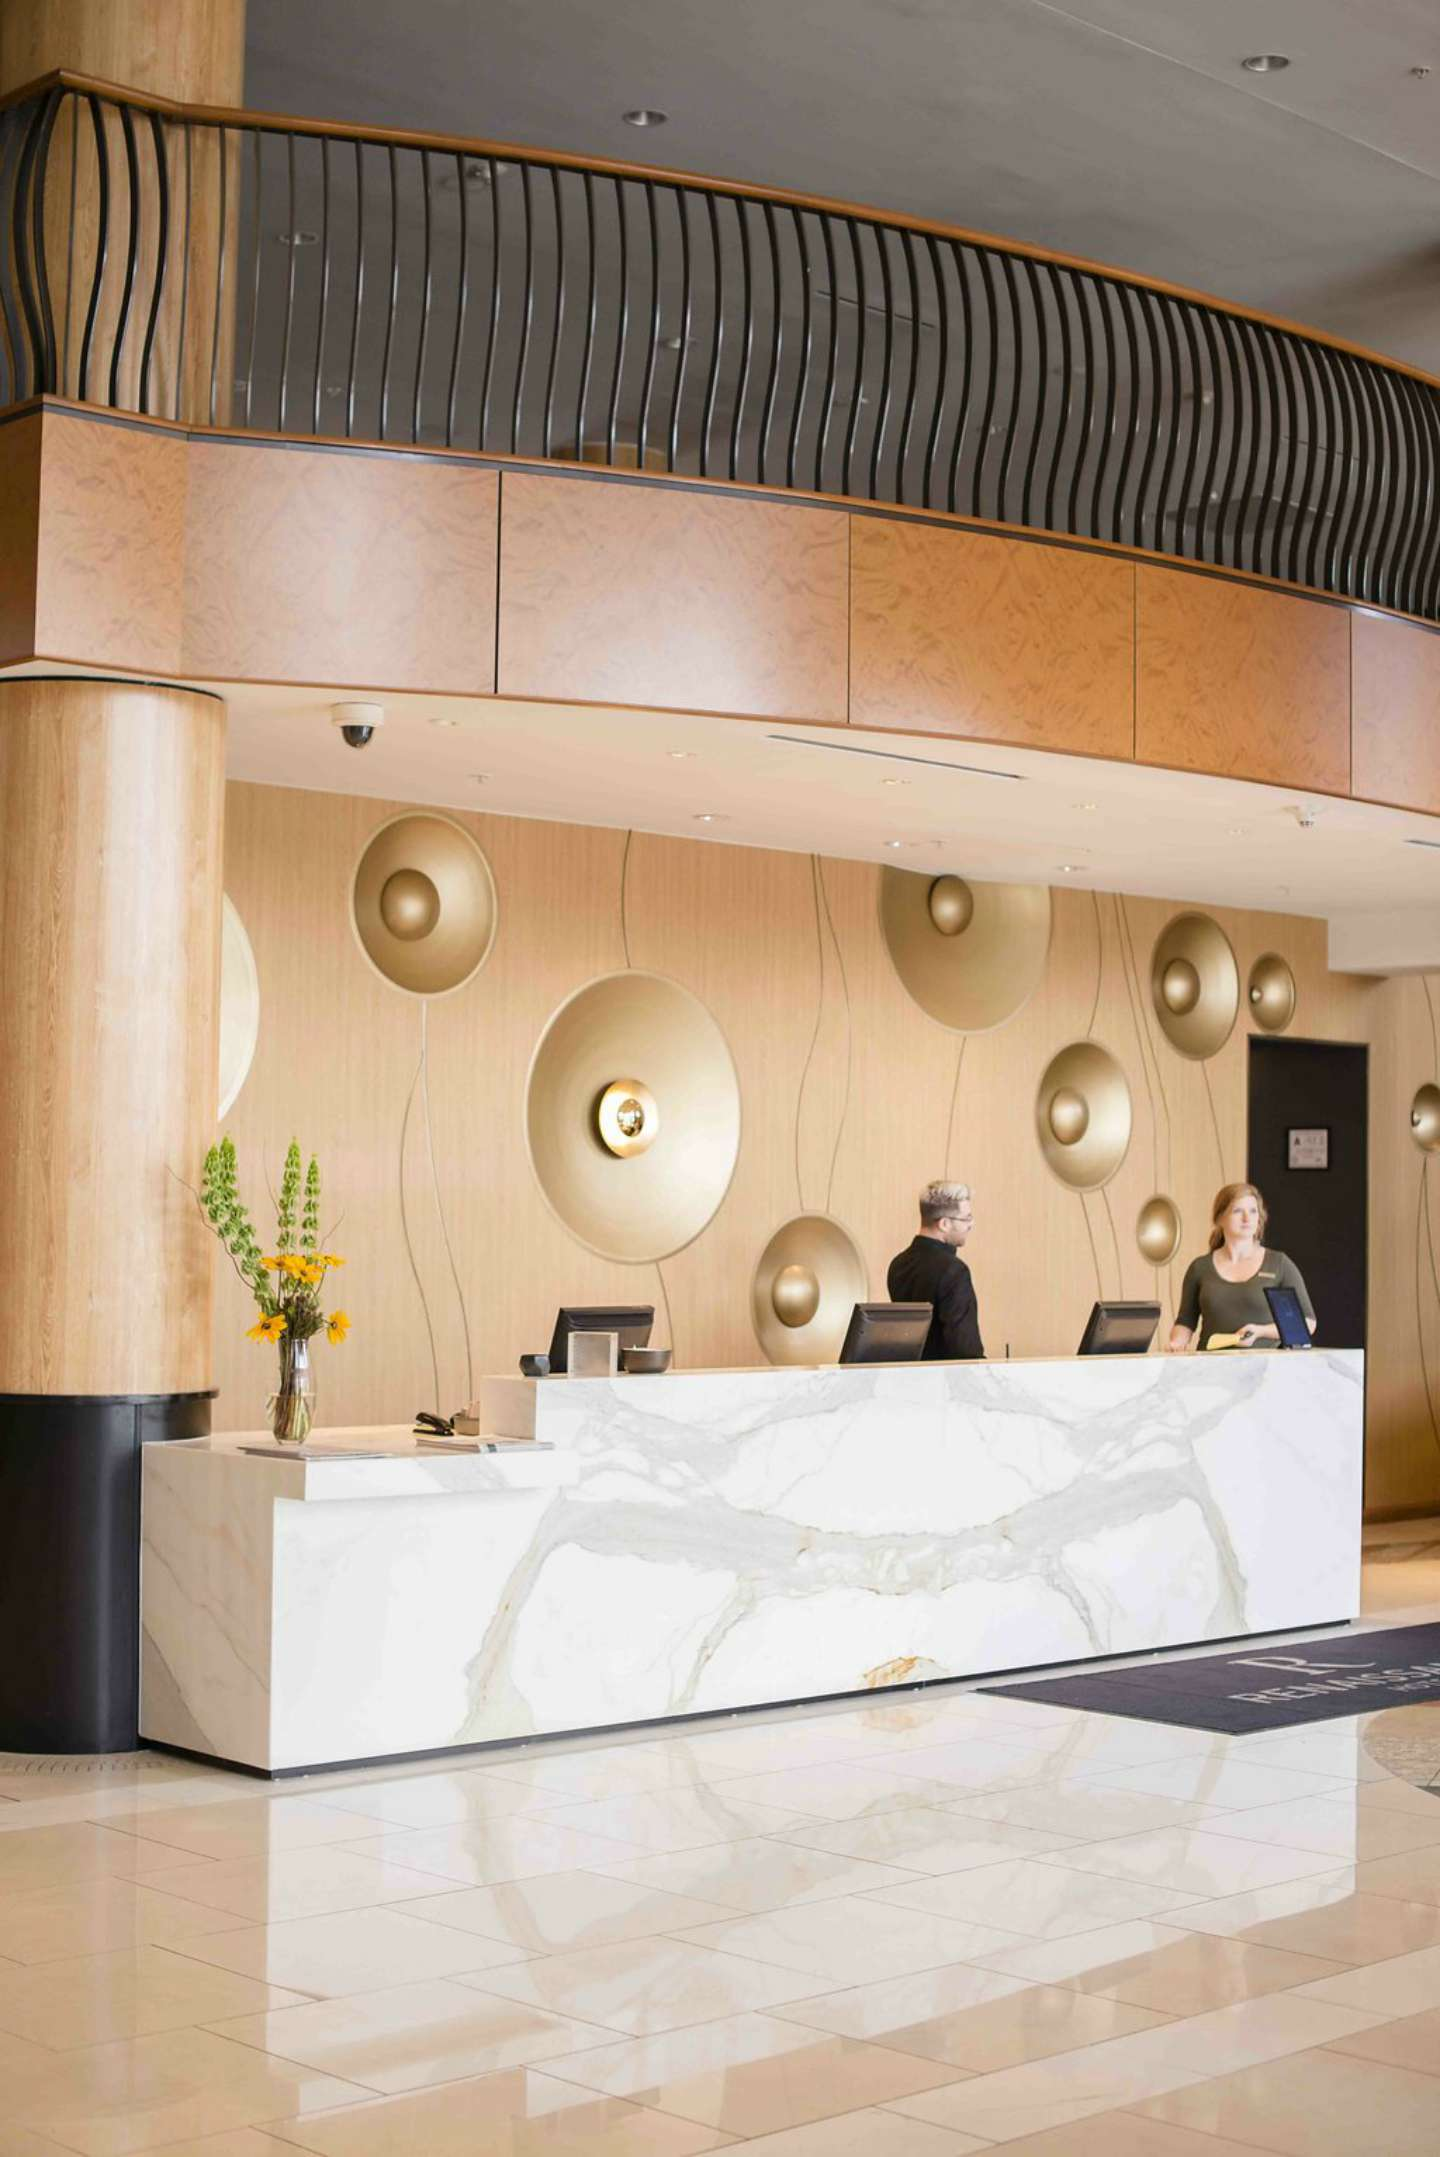 Raleigh Hotel - Renaissance Raleigh North Hills Hotel by NC blogger I'm Fixin' To @mbg0112